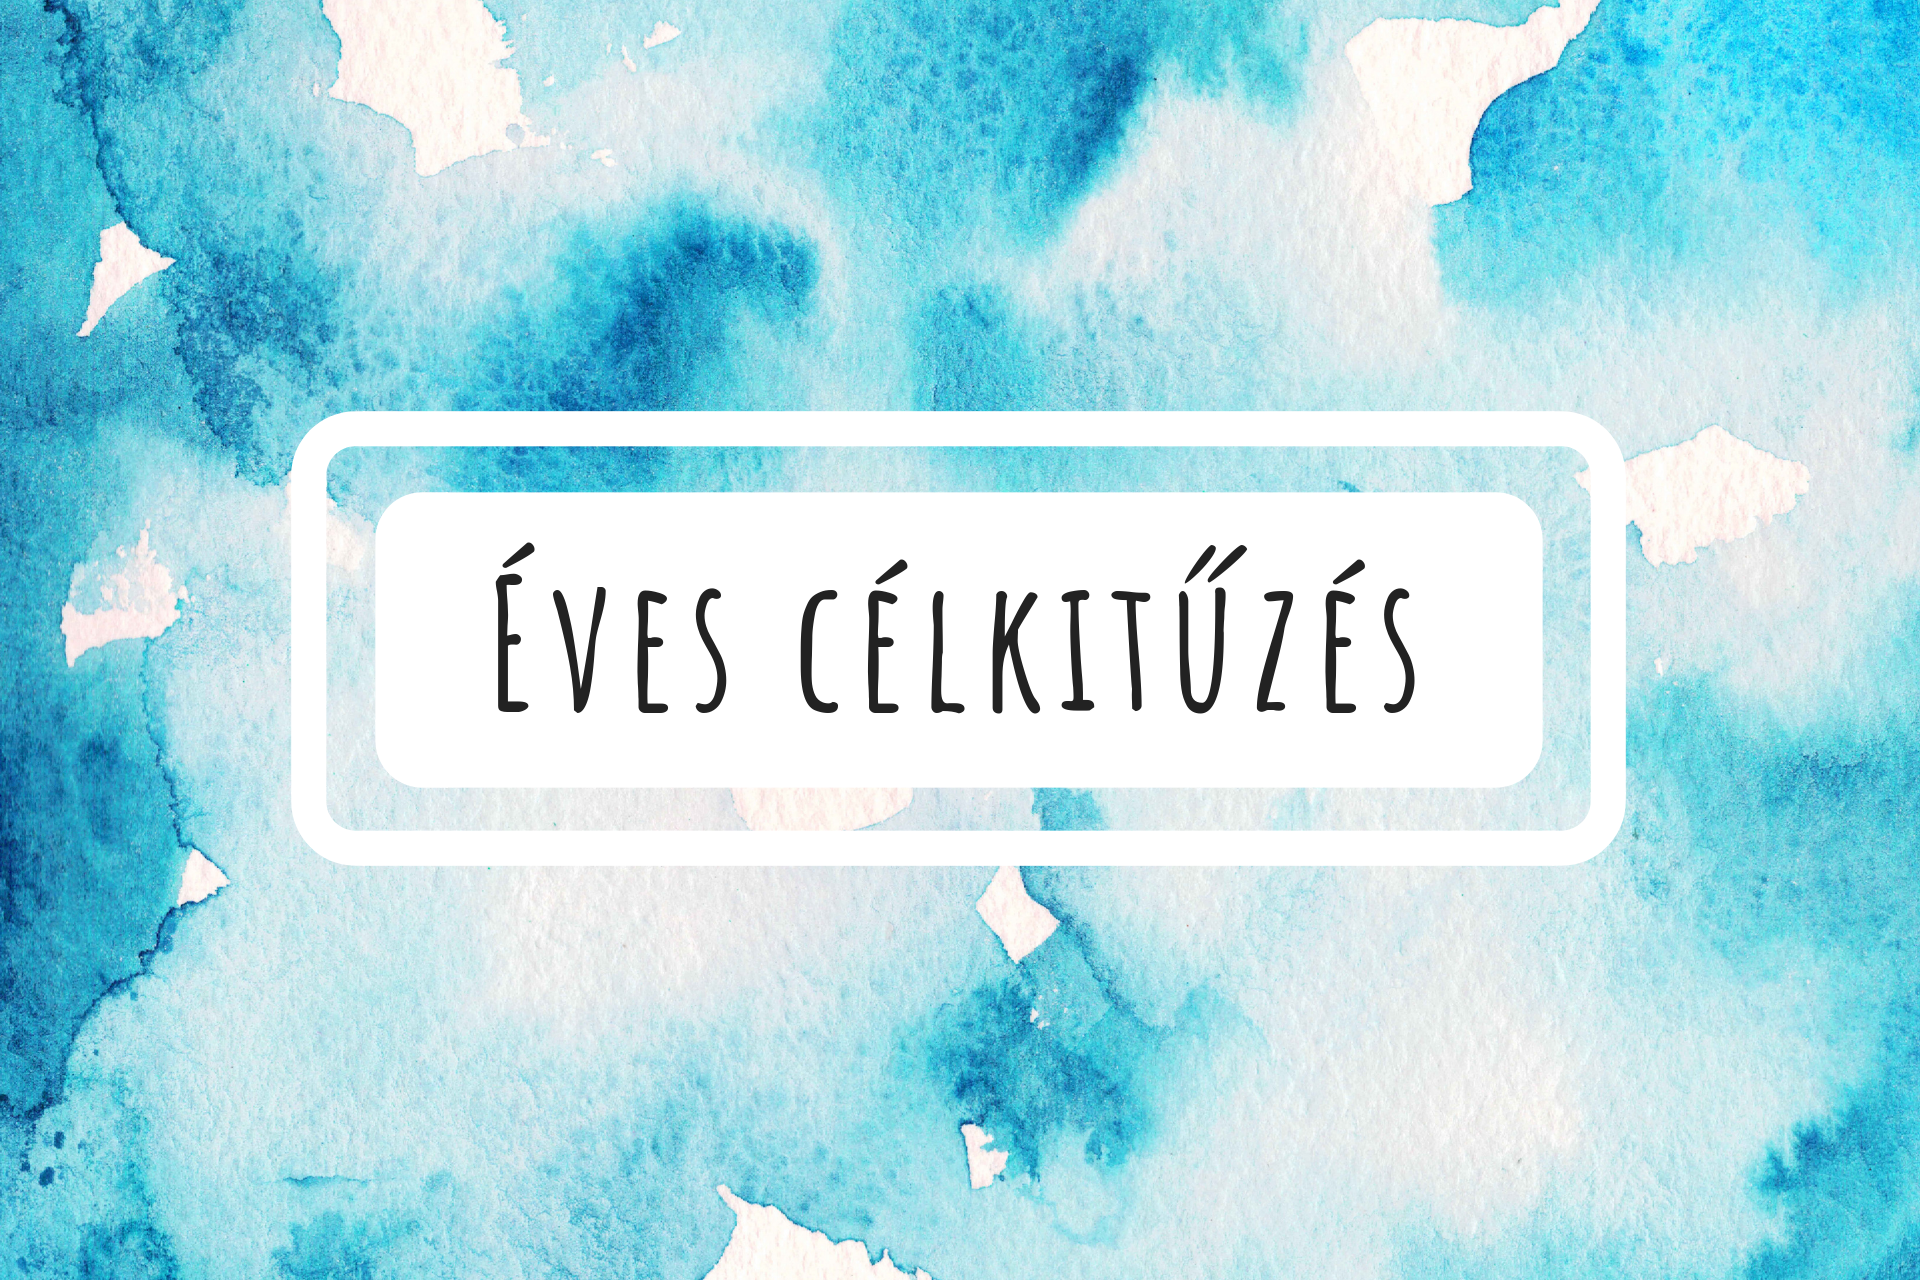 eves_celkituzes.png